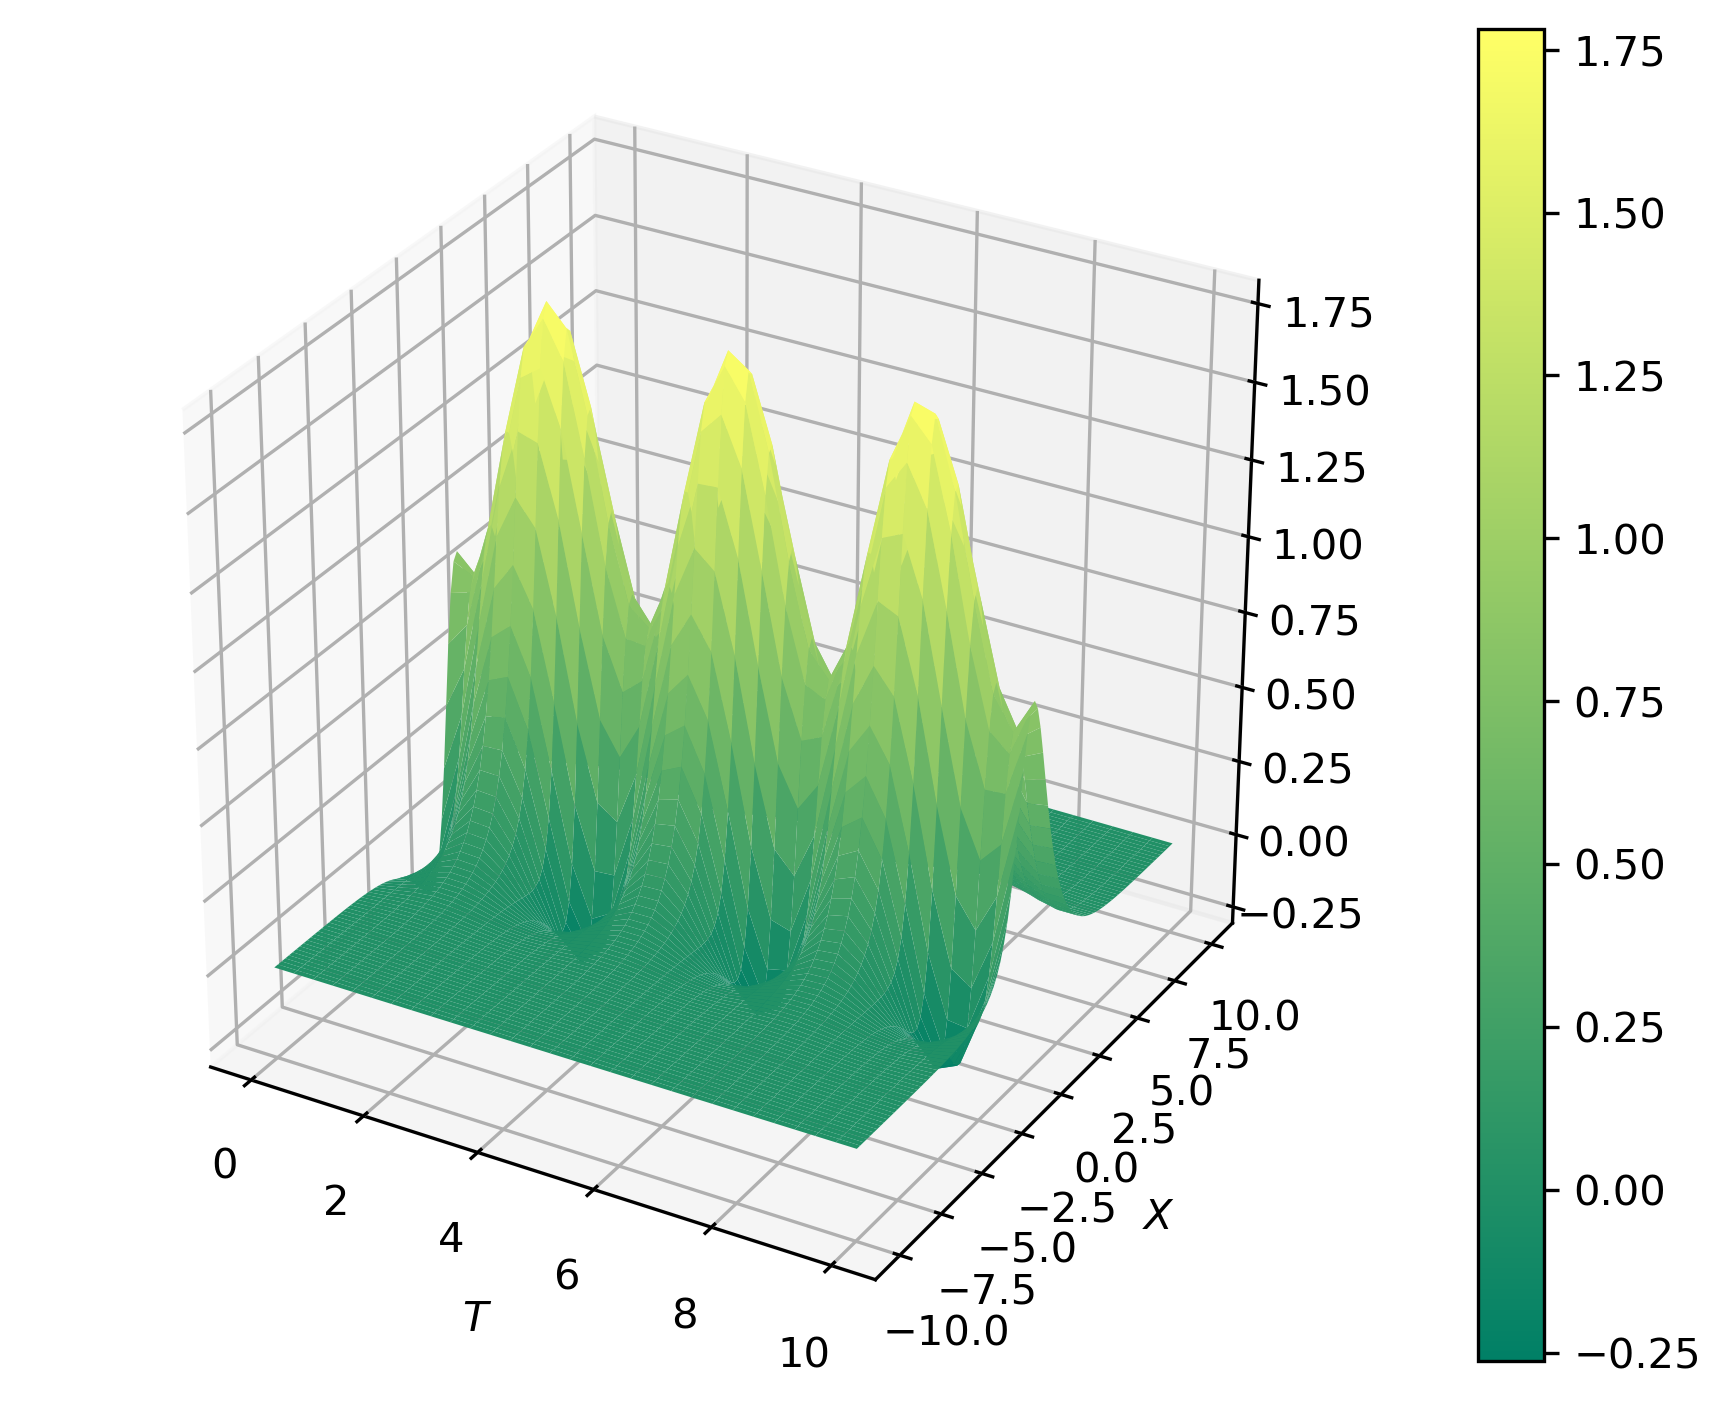 Figure 1: Space-time function as a representation of a dynamical system for PCA analysis